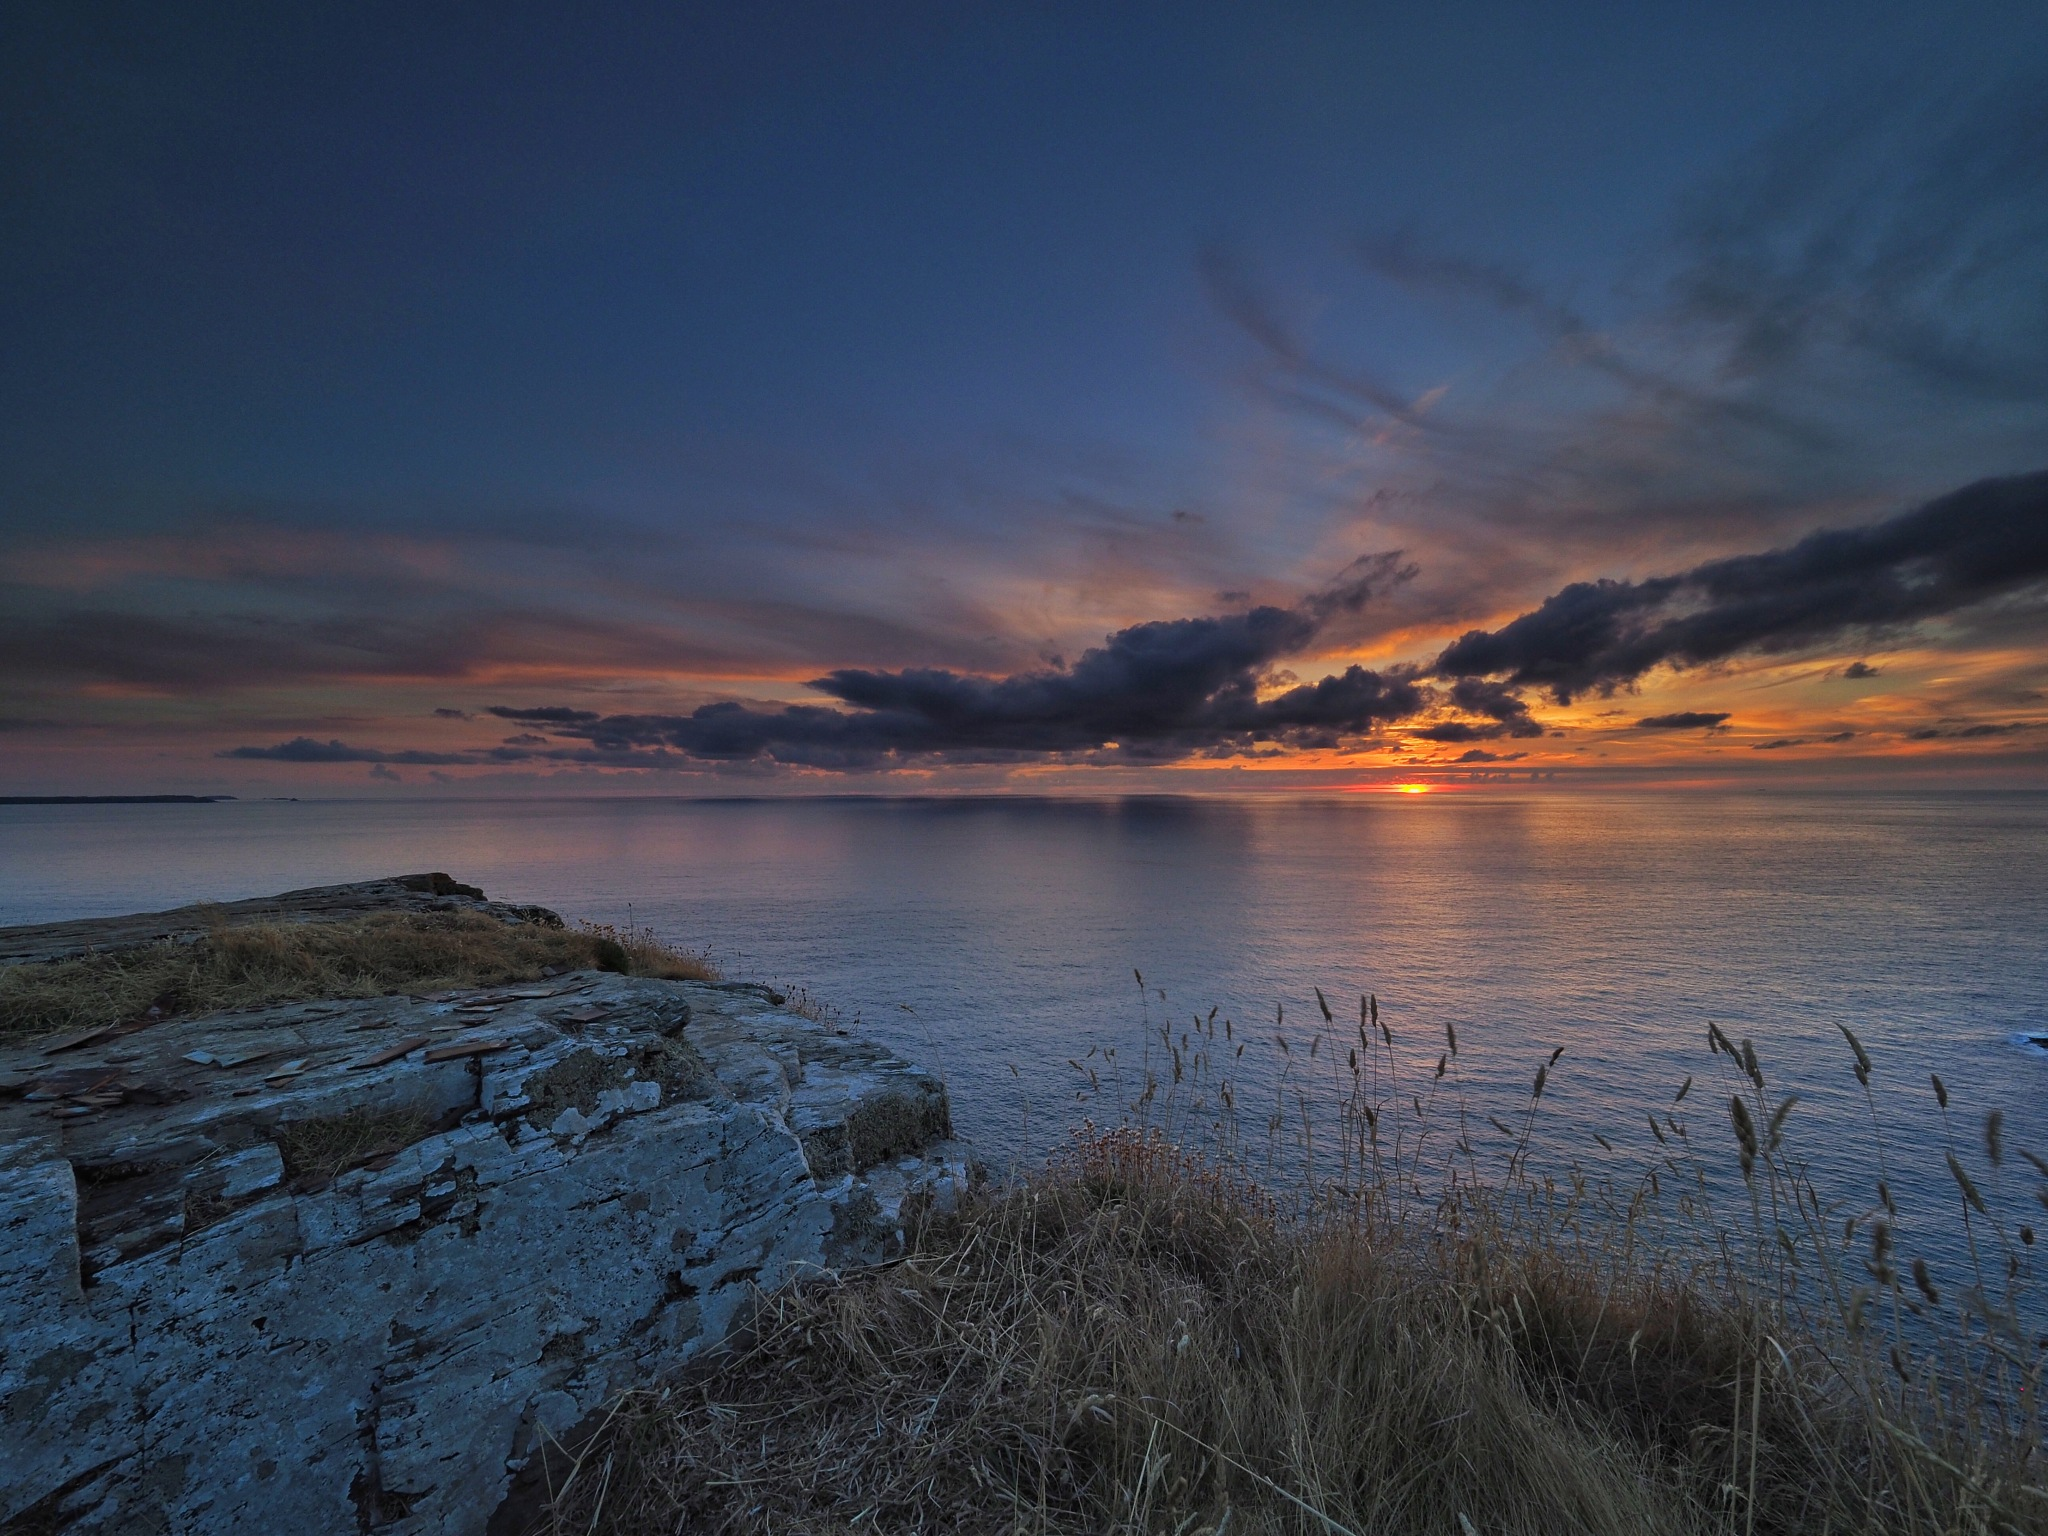 Sunset off the coast of Cornwall by Derek Thompson